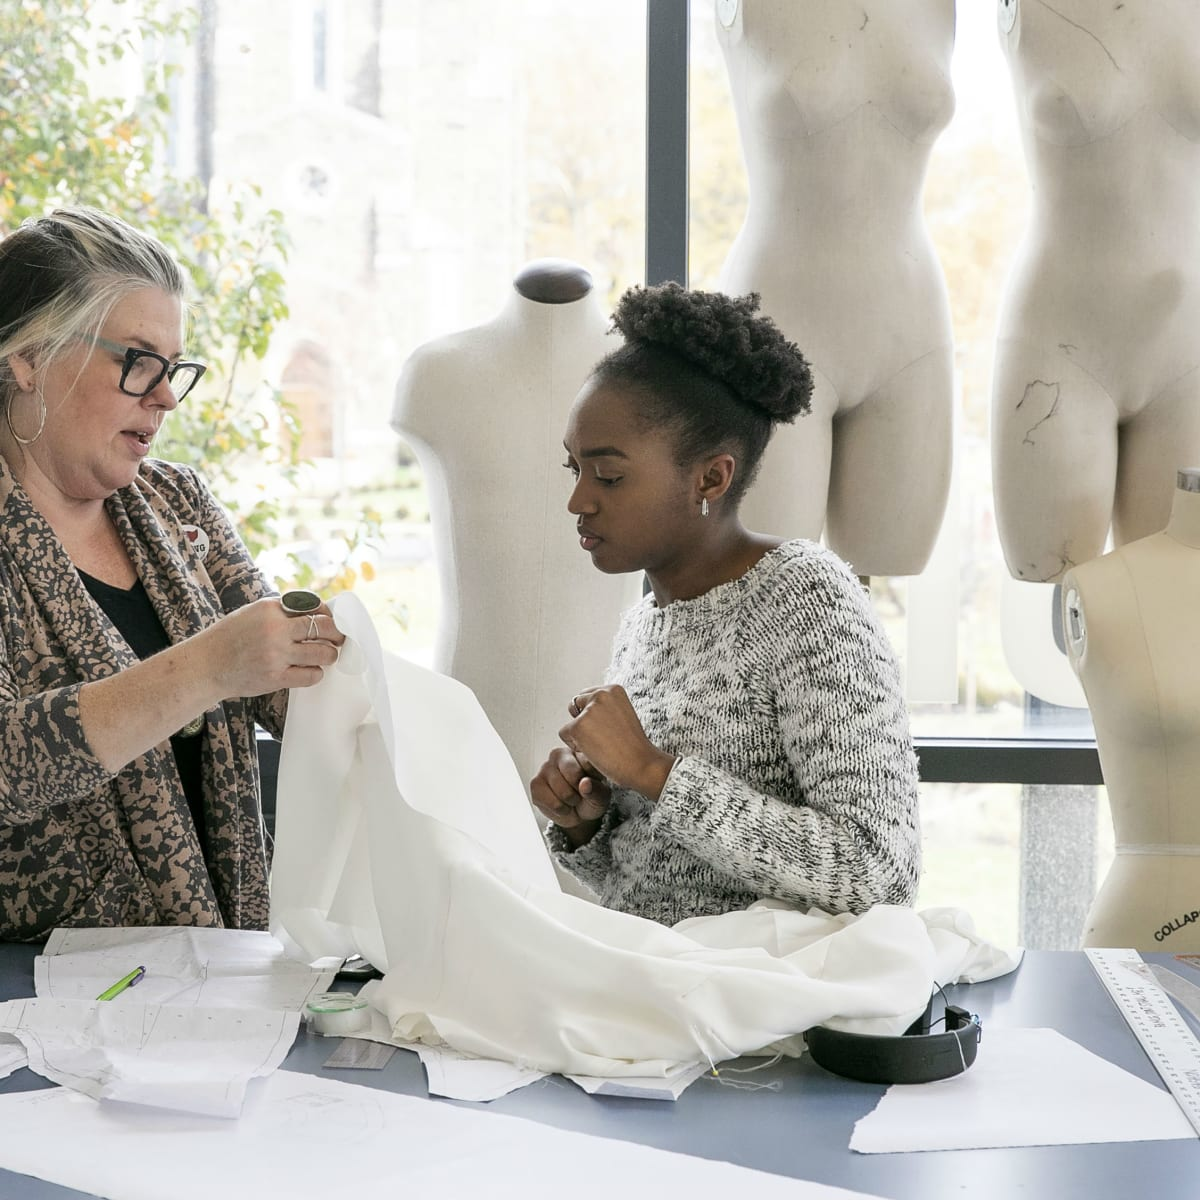 How Can Racism Be Addressed In Fashion Schools Fashionista